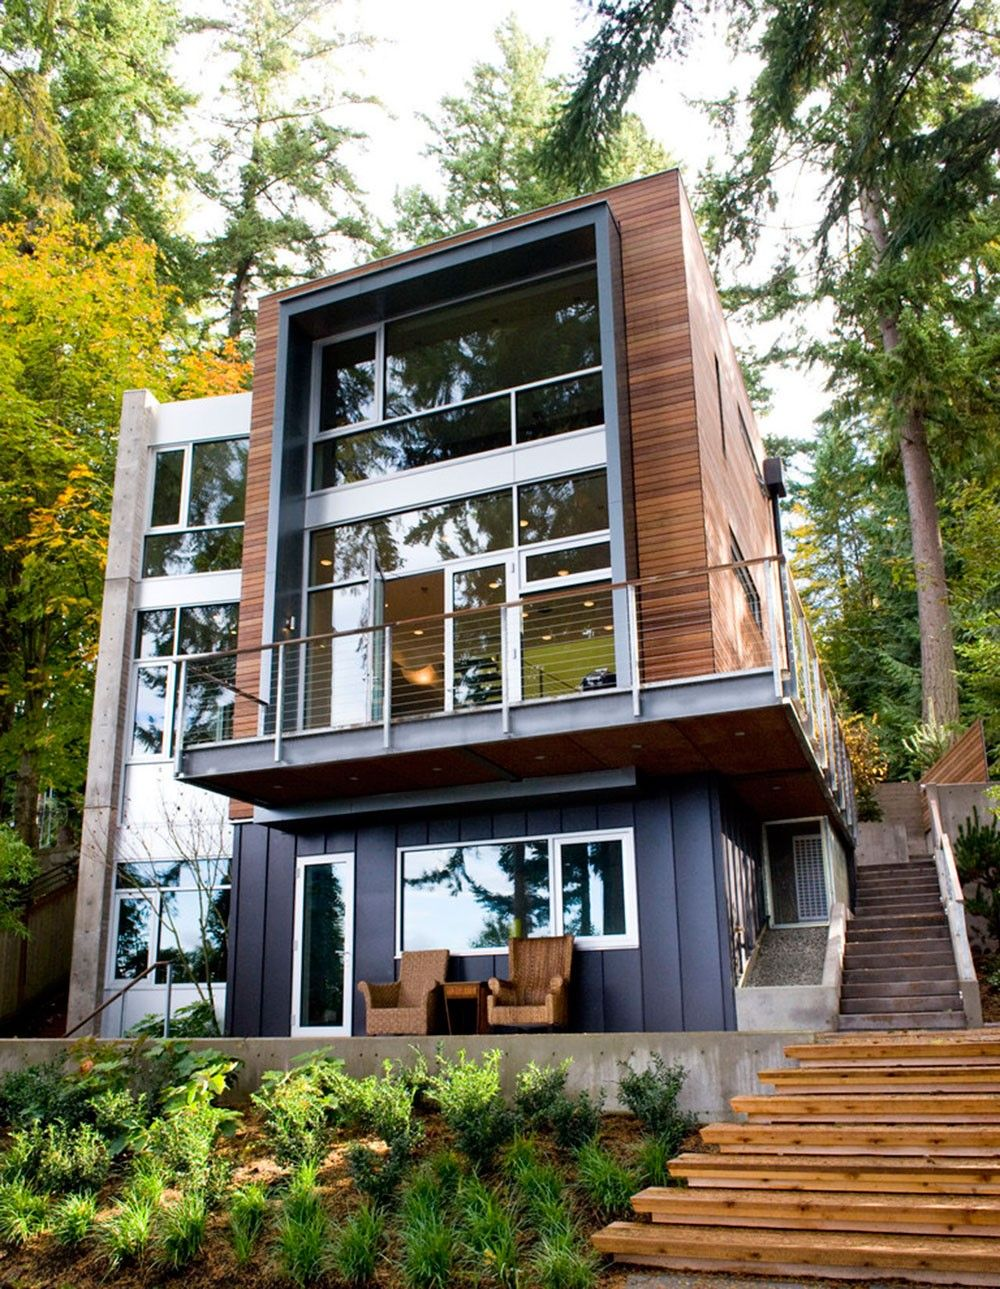 Best Kitchen Gallery: Container House Container House Shipping Container Homes Can Be of Simple Shipping Container House on rachelxblog.com